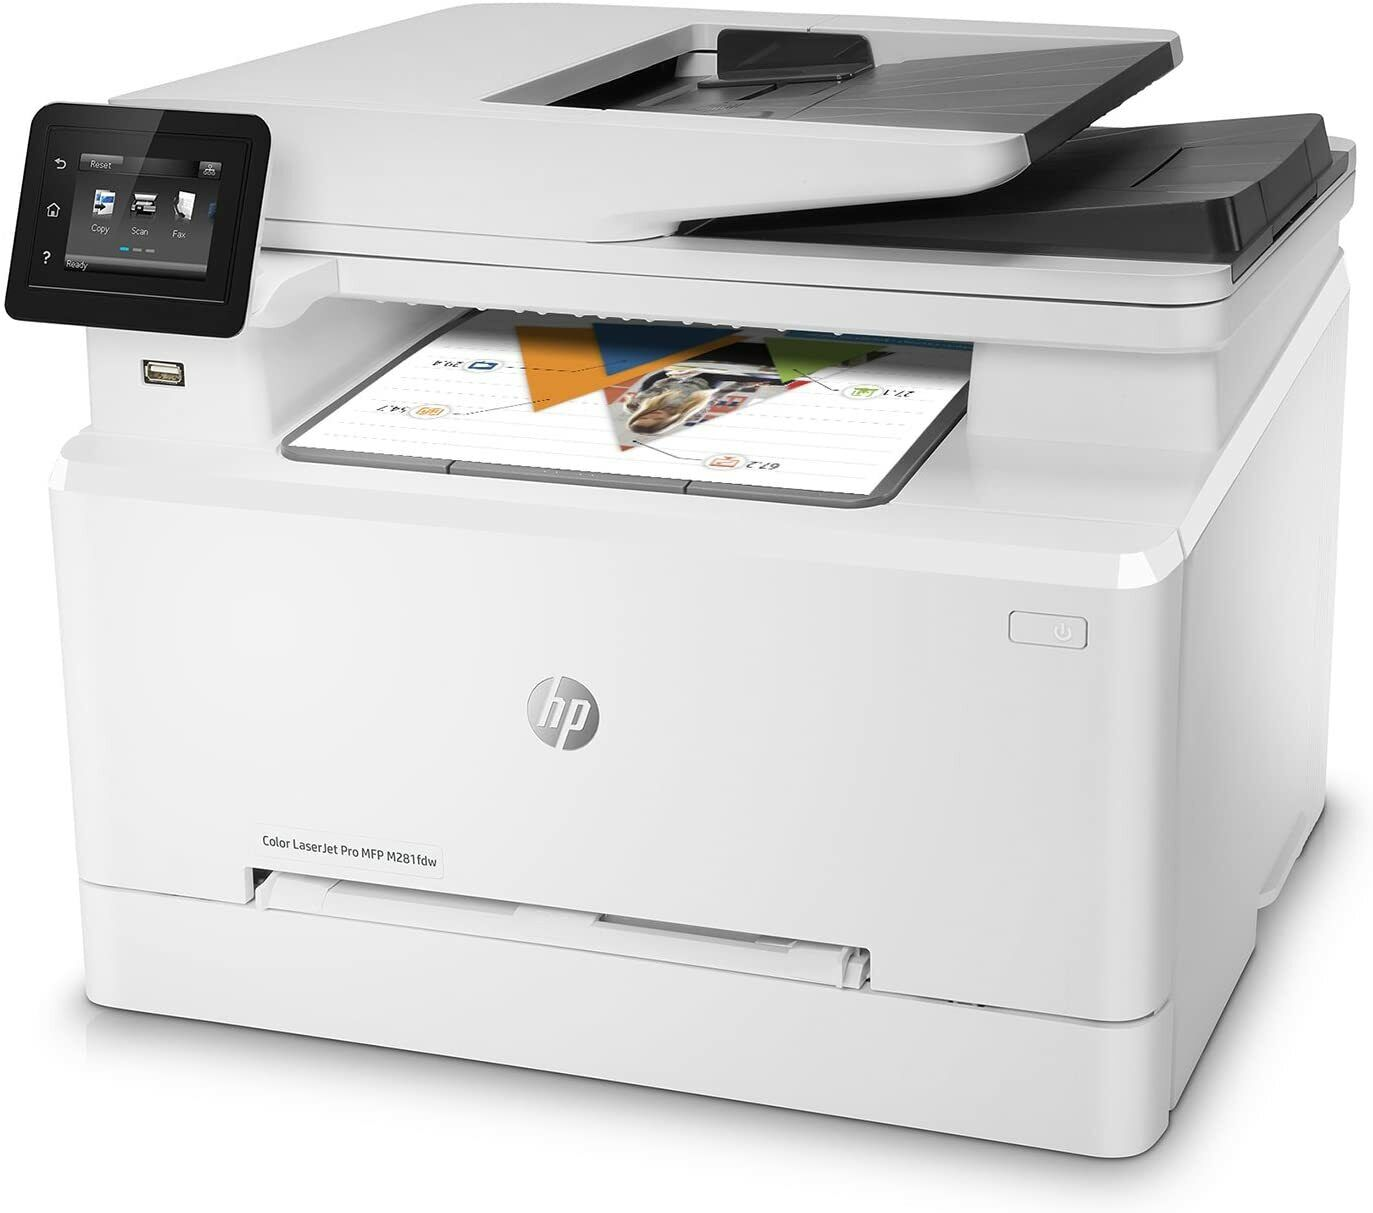 🔥 HP M283fdw LaserJet Pro All in One Wireless Color Laser